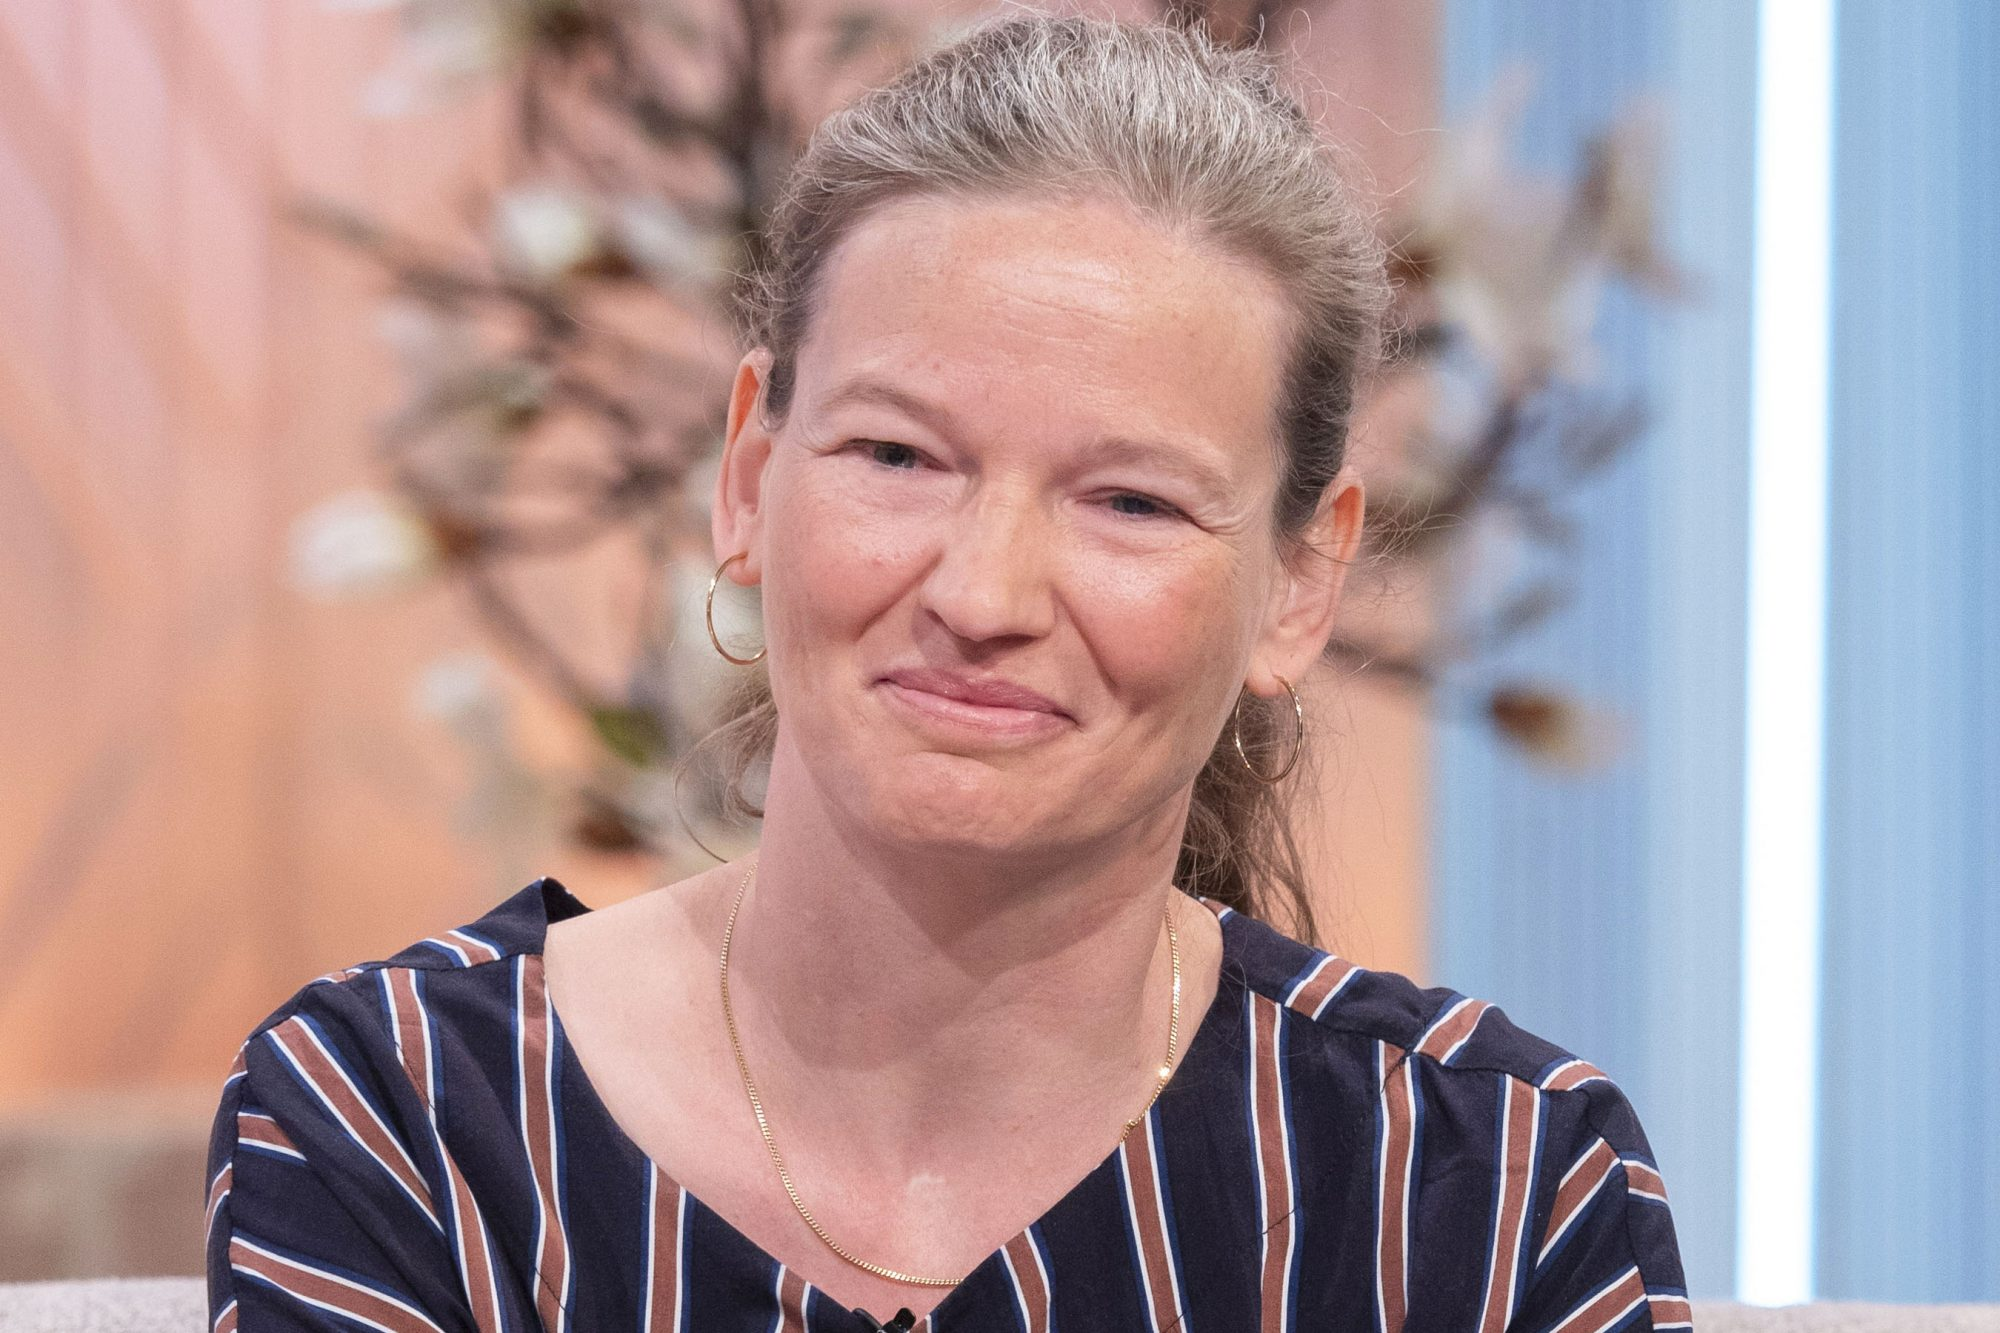 Rikke Schmidt Kjaergaard. Rikke has since written a book about her experience and she and her husband Peter join Christine to talk about how she's rebuilt her life, learned to walk and talk again and she has a very important message to share.